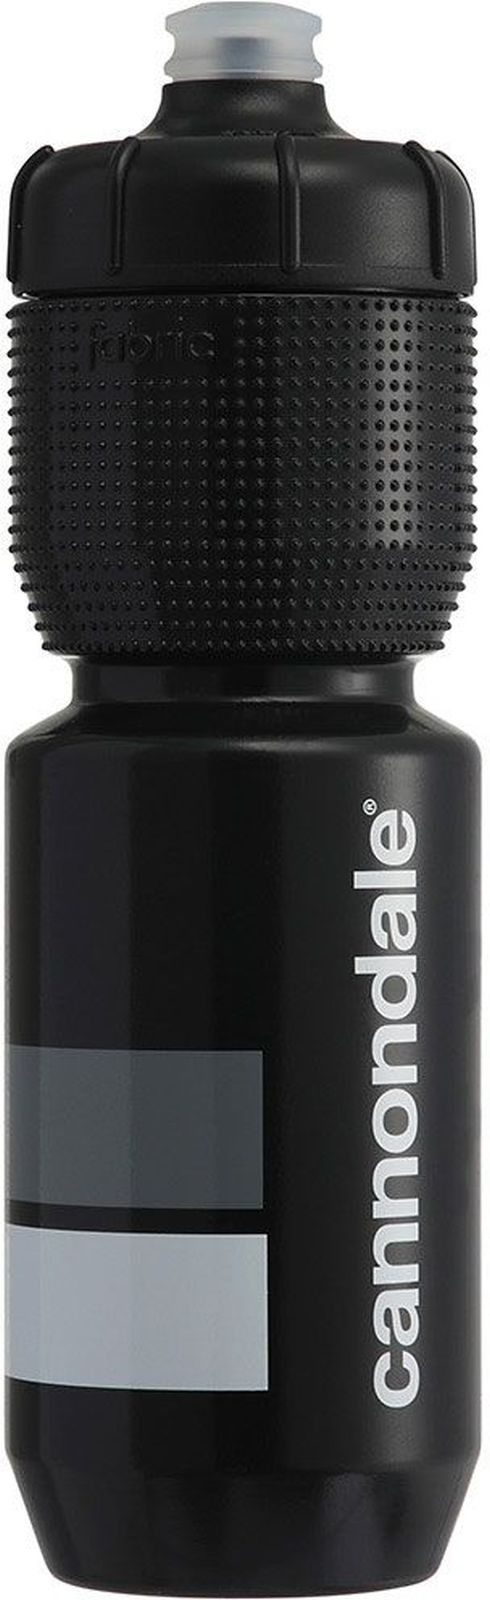 Cannondale Block Gripper Bottle 750 ml - black/white uni